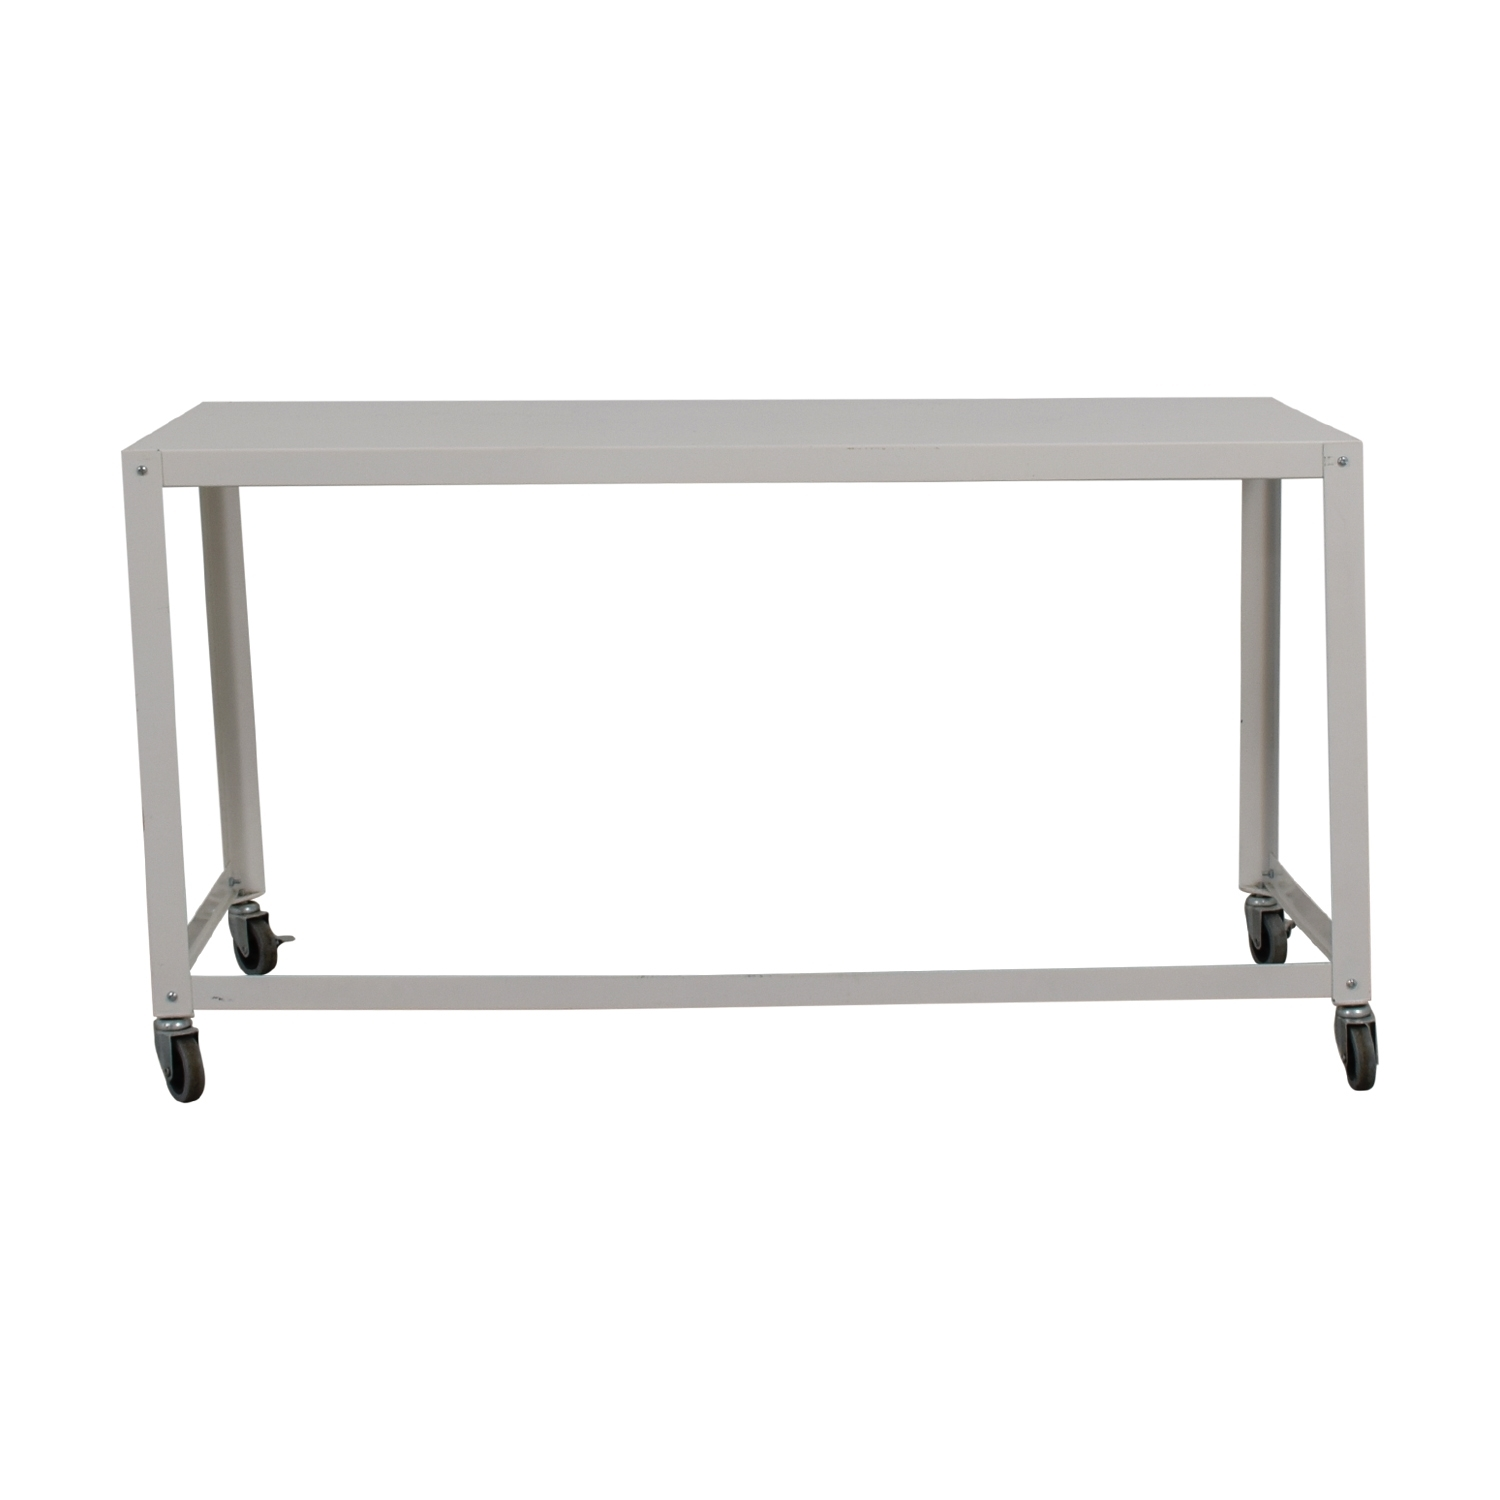 81% Off - Cb2 Cb2 Go-Cart White Rolling Desk / Tables with Go-Cart White Rolling Coffee Tables (Image 4 of 30)